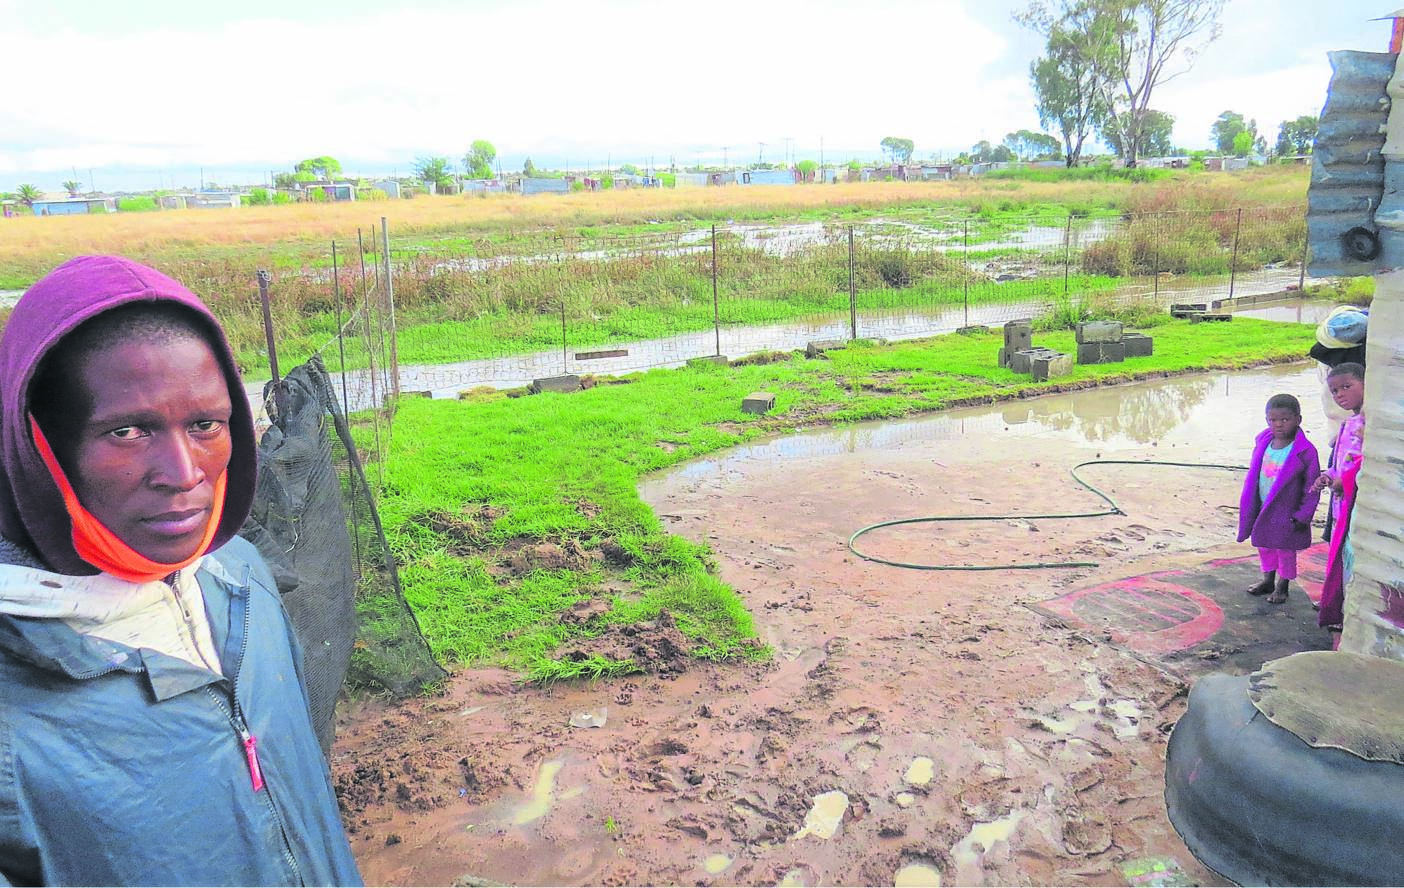 Moses Molantoa outside in the flooded yard in the Khayelitsha settlement in ward 17, Bloemfontein.  Photo: Teboho Setena